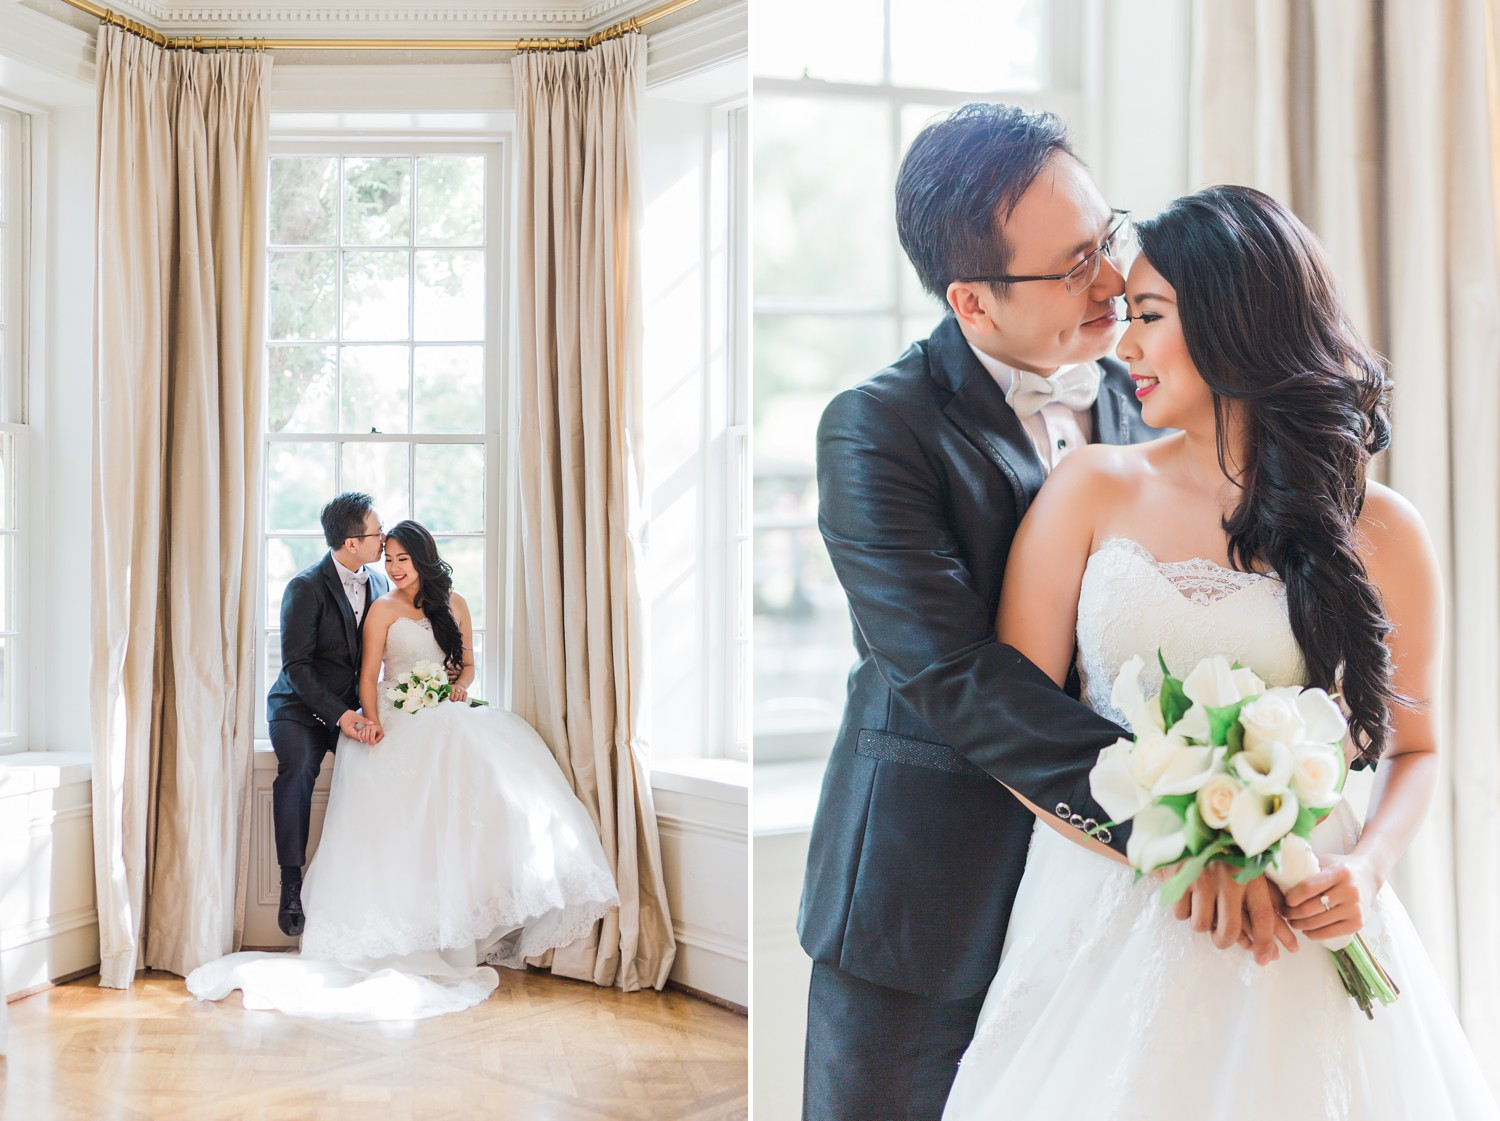 Bridal Portraits Graydon Hall Manor PreWedding Photos Toronto International Wedding Photographer